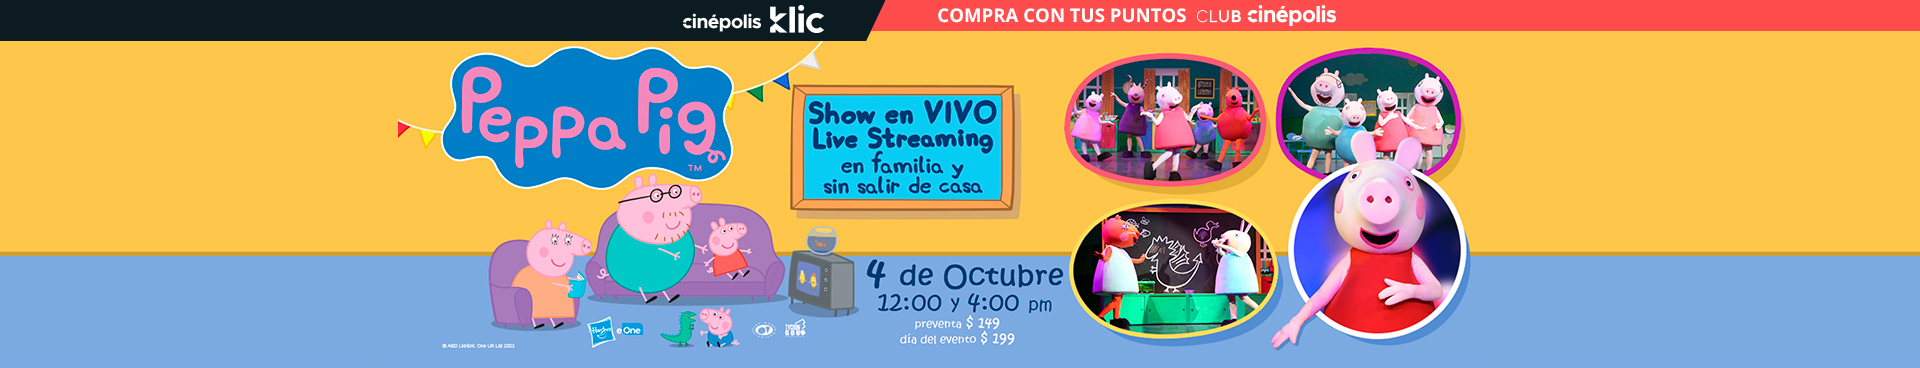 Cinépolis Klic: Peppa Pig Live Streaming